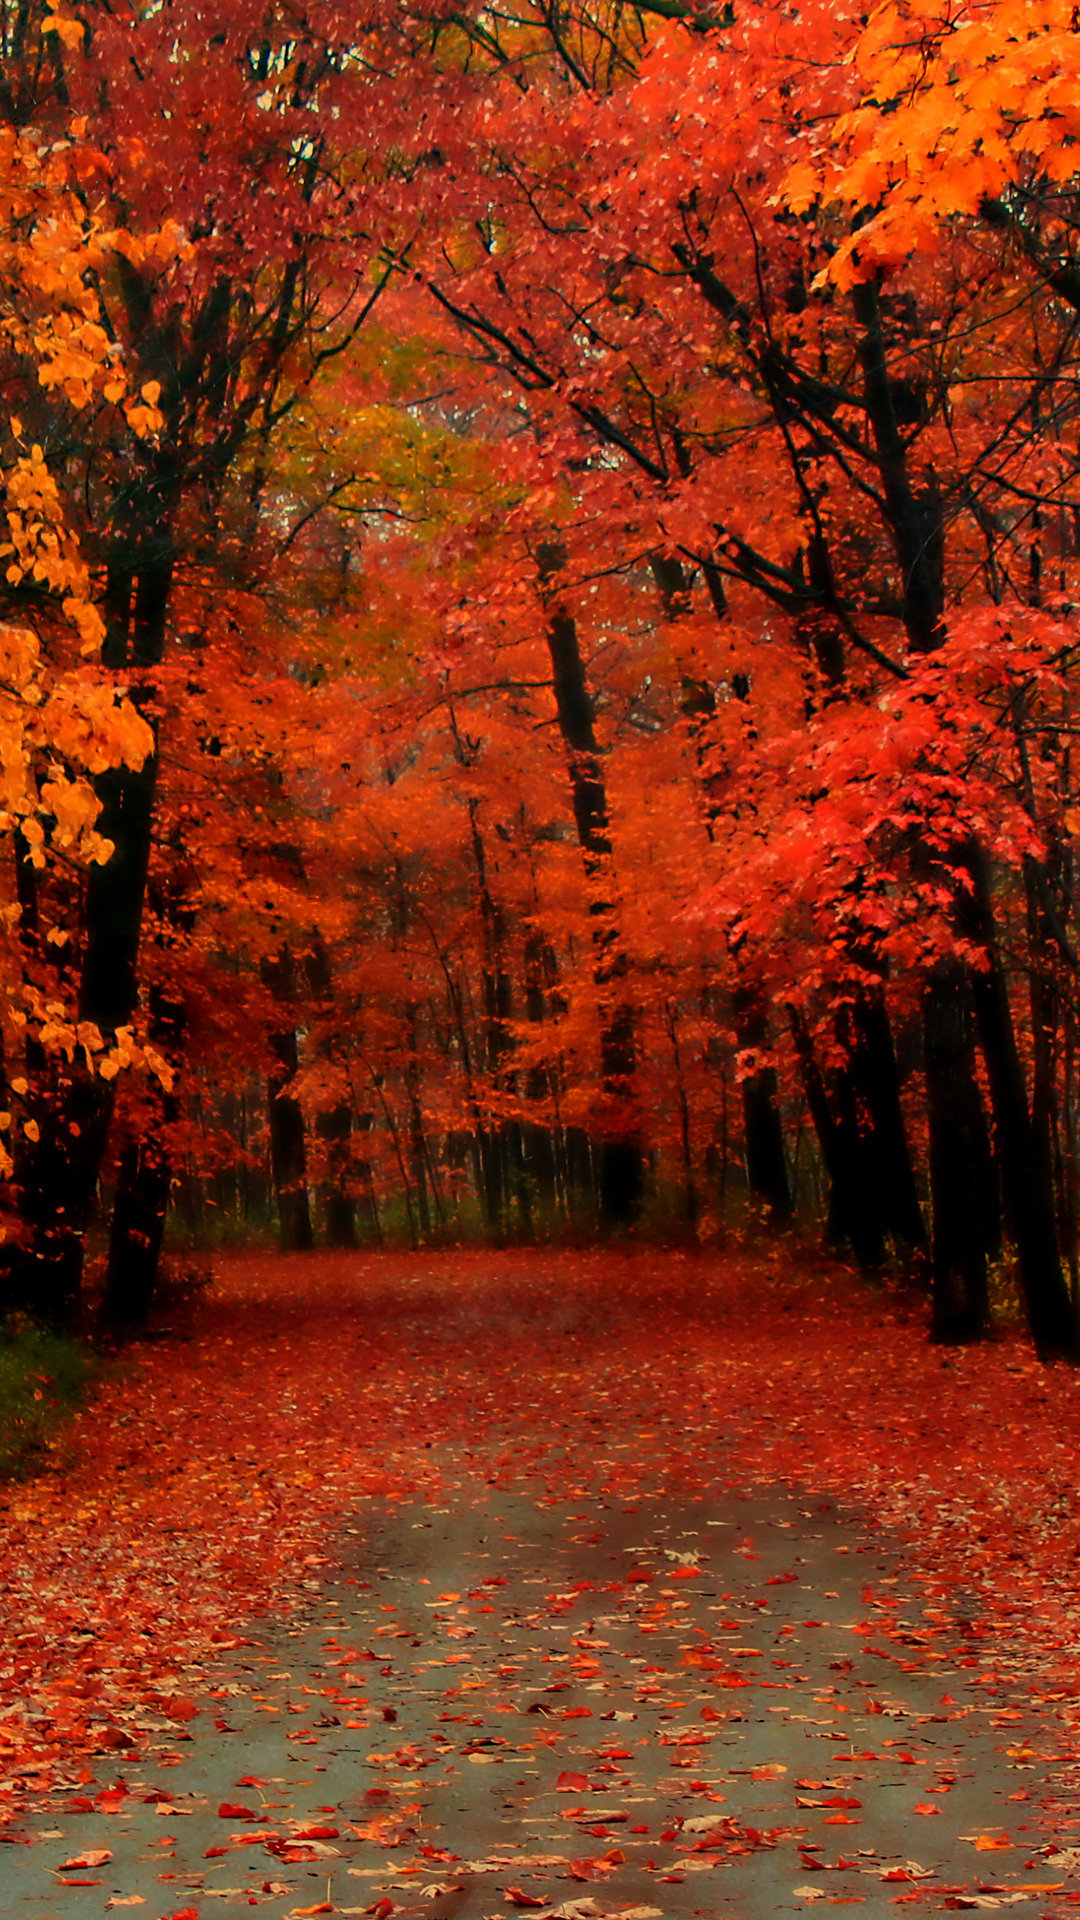 Red Autumn Wallpaper - Aesthetic Autumn Background Iphone - HD Wallpaper